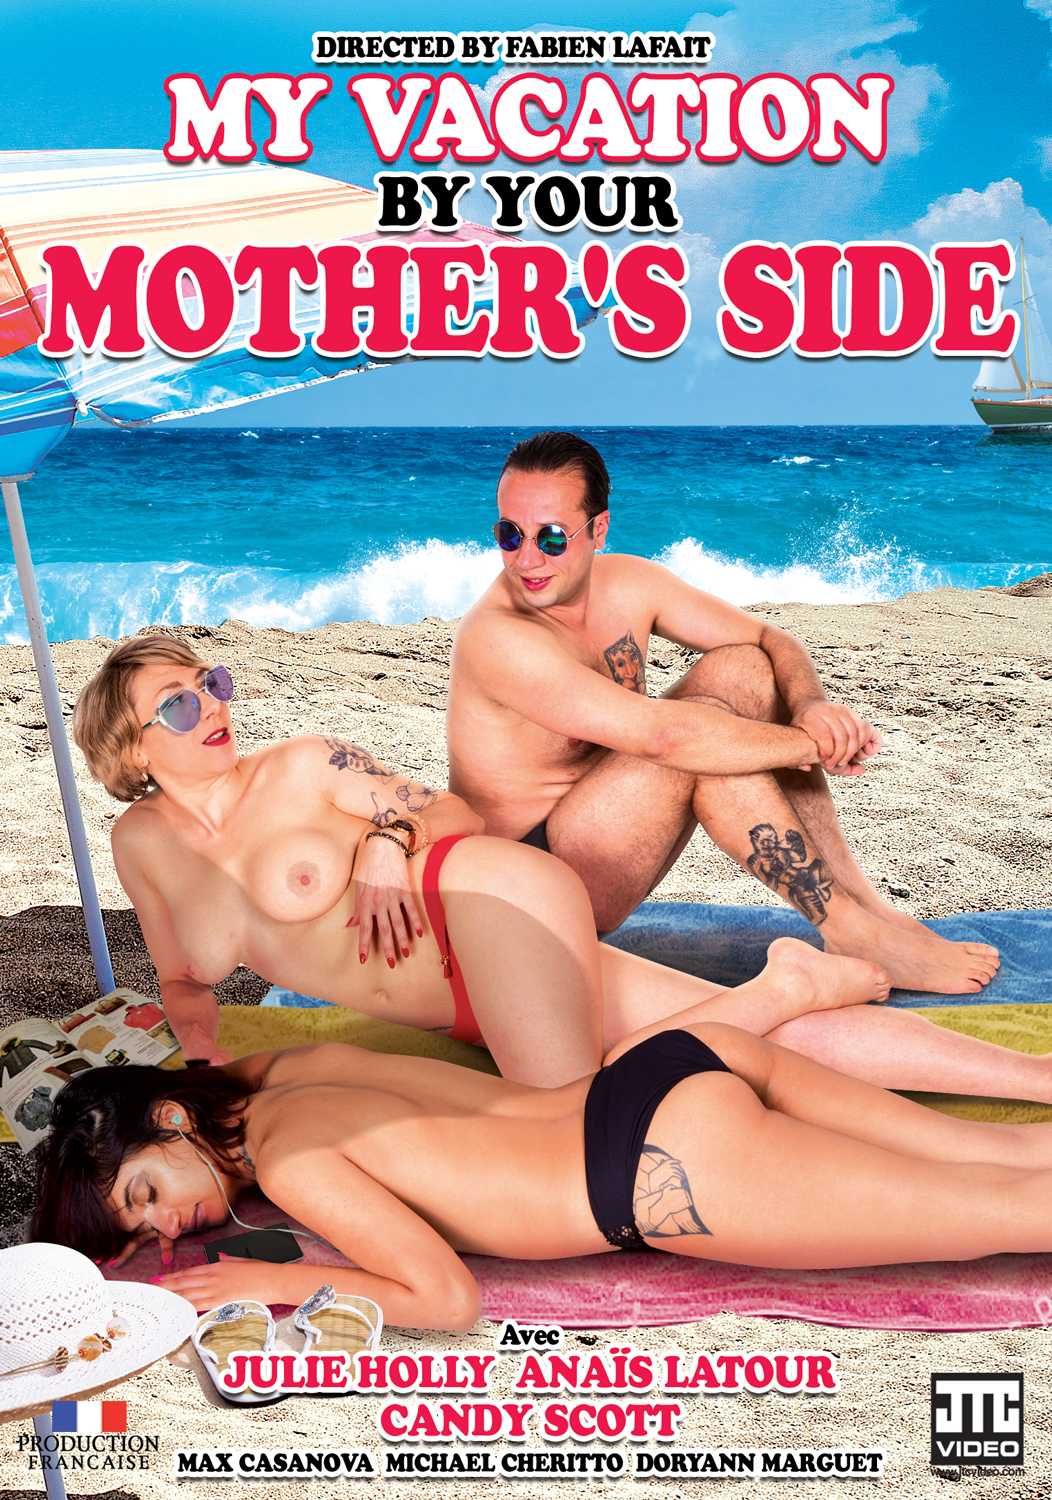 My vacation by your mother´s side